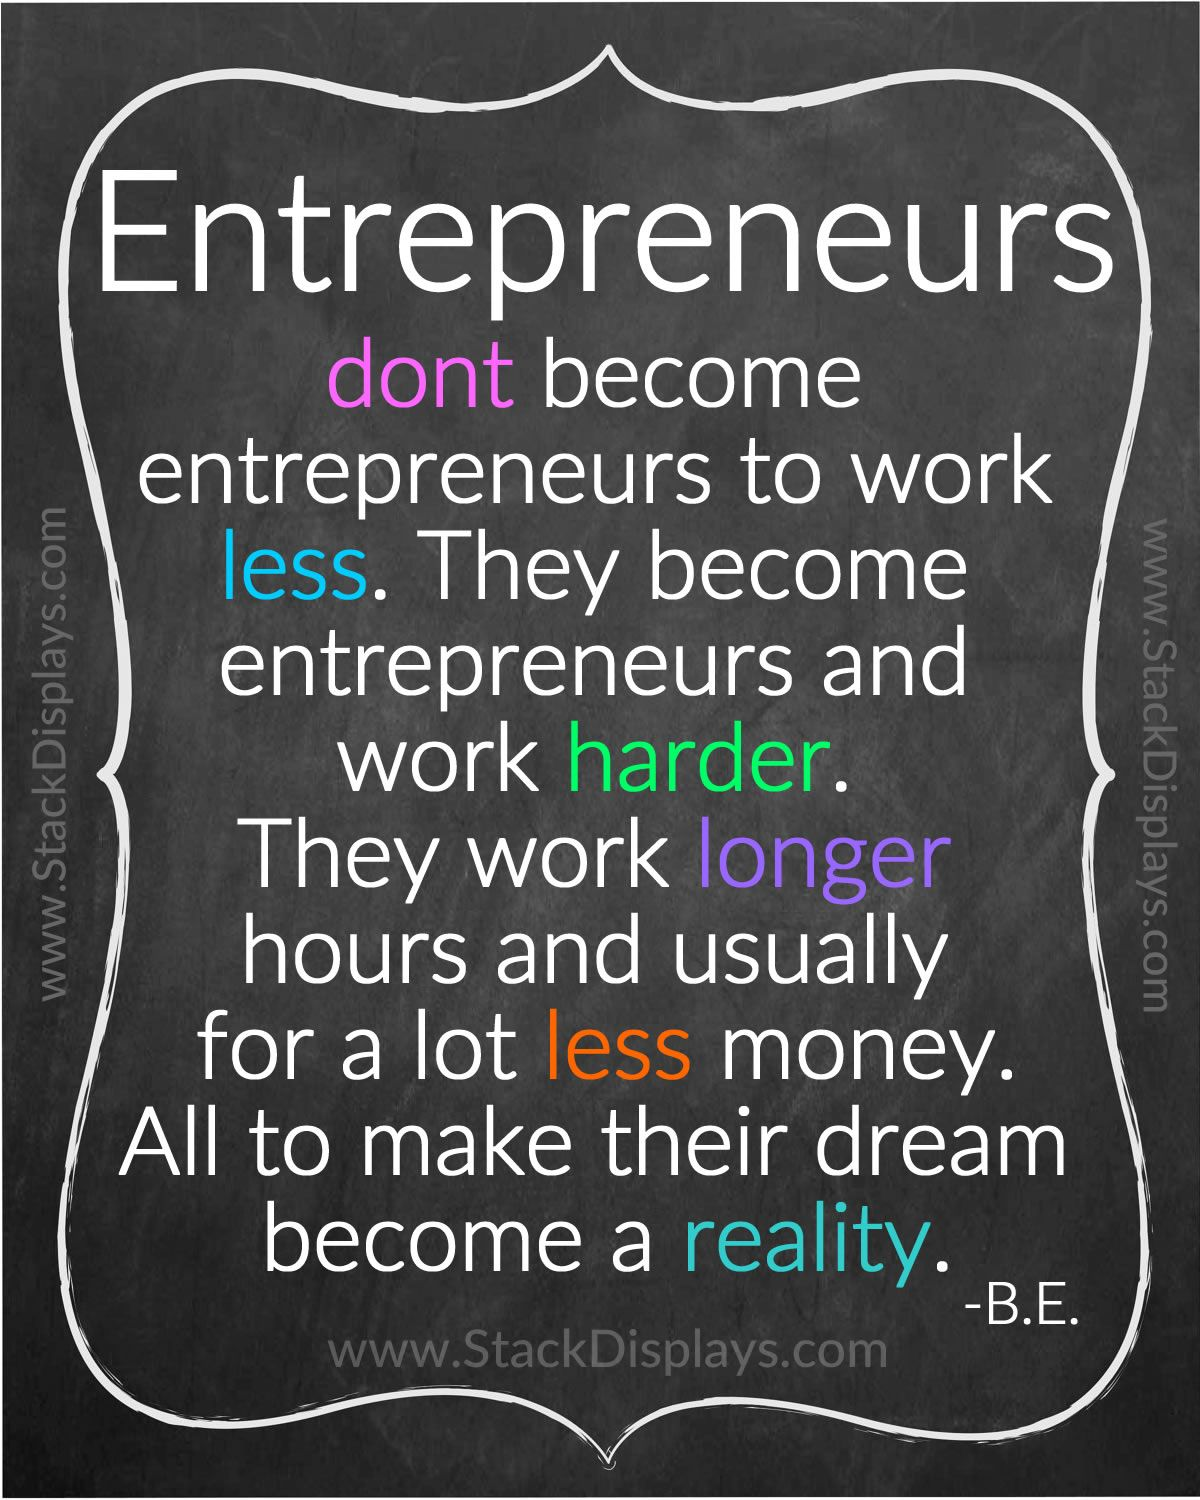 The True Definition Of An Entrepreneur Brought To You By Stack